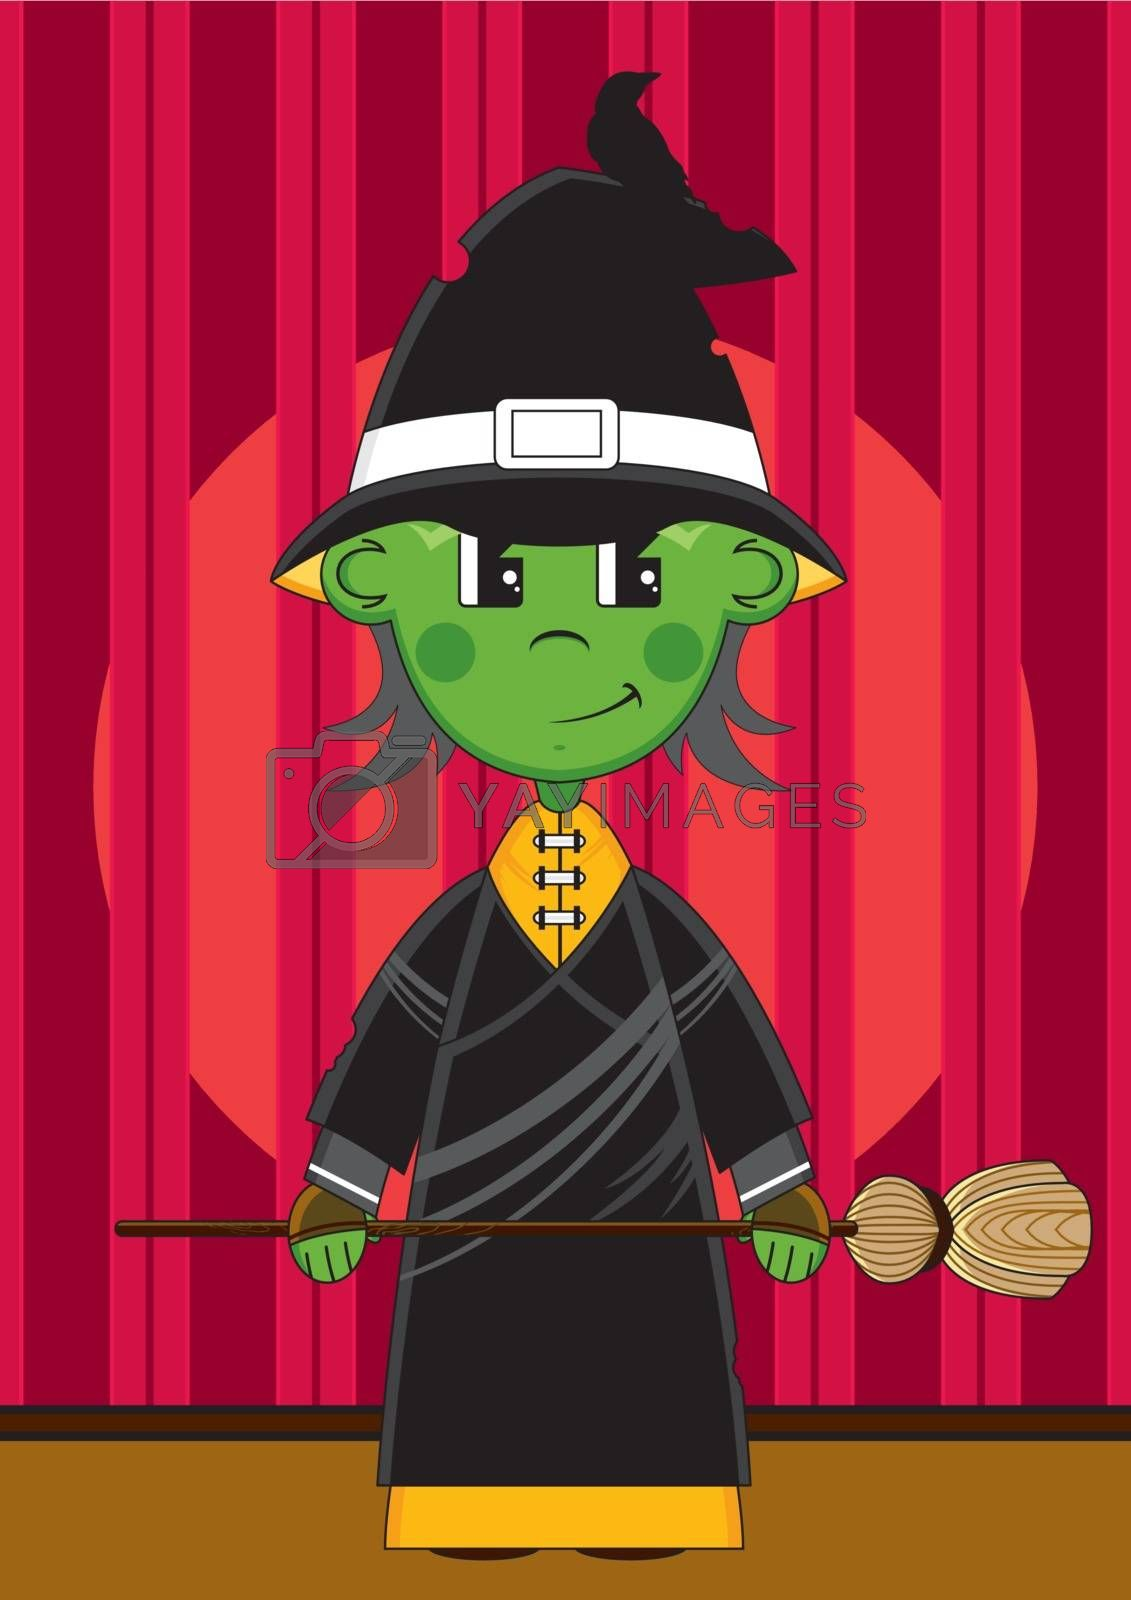 Cute Cartoon Witch with Broomstick on Stage - Vector Illustration - By Mark Murphy Creative